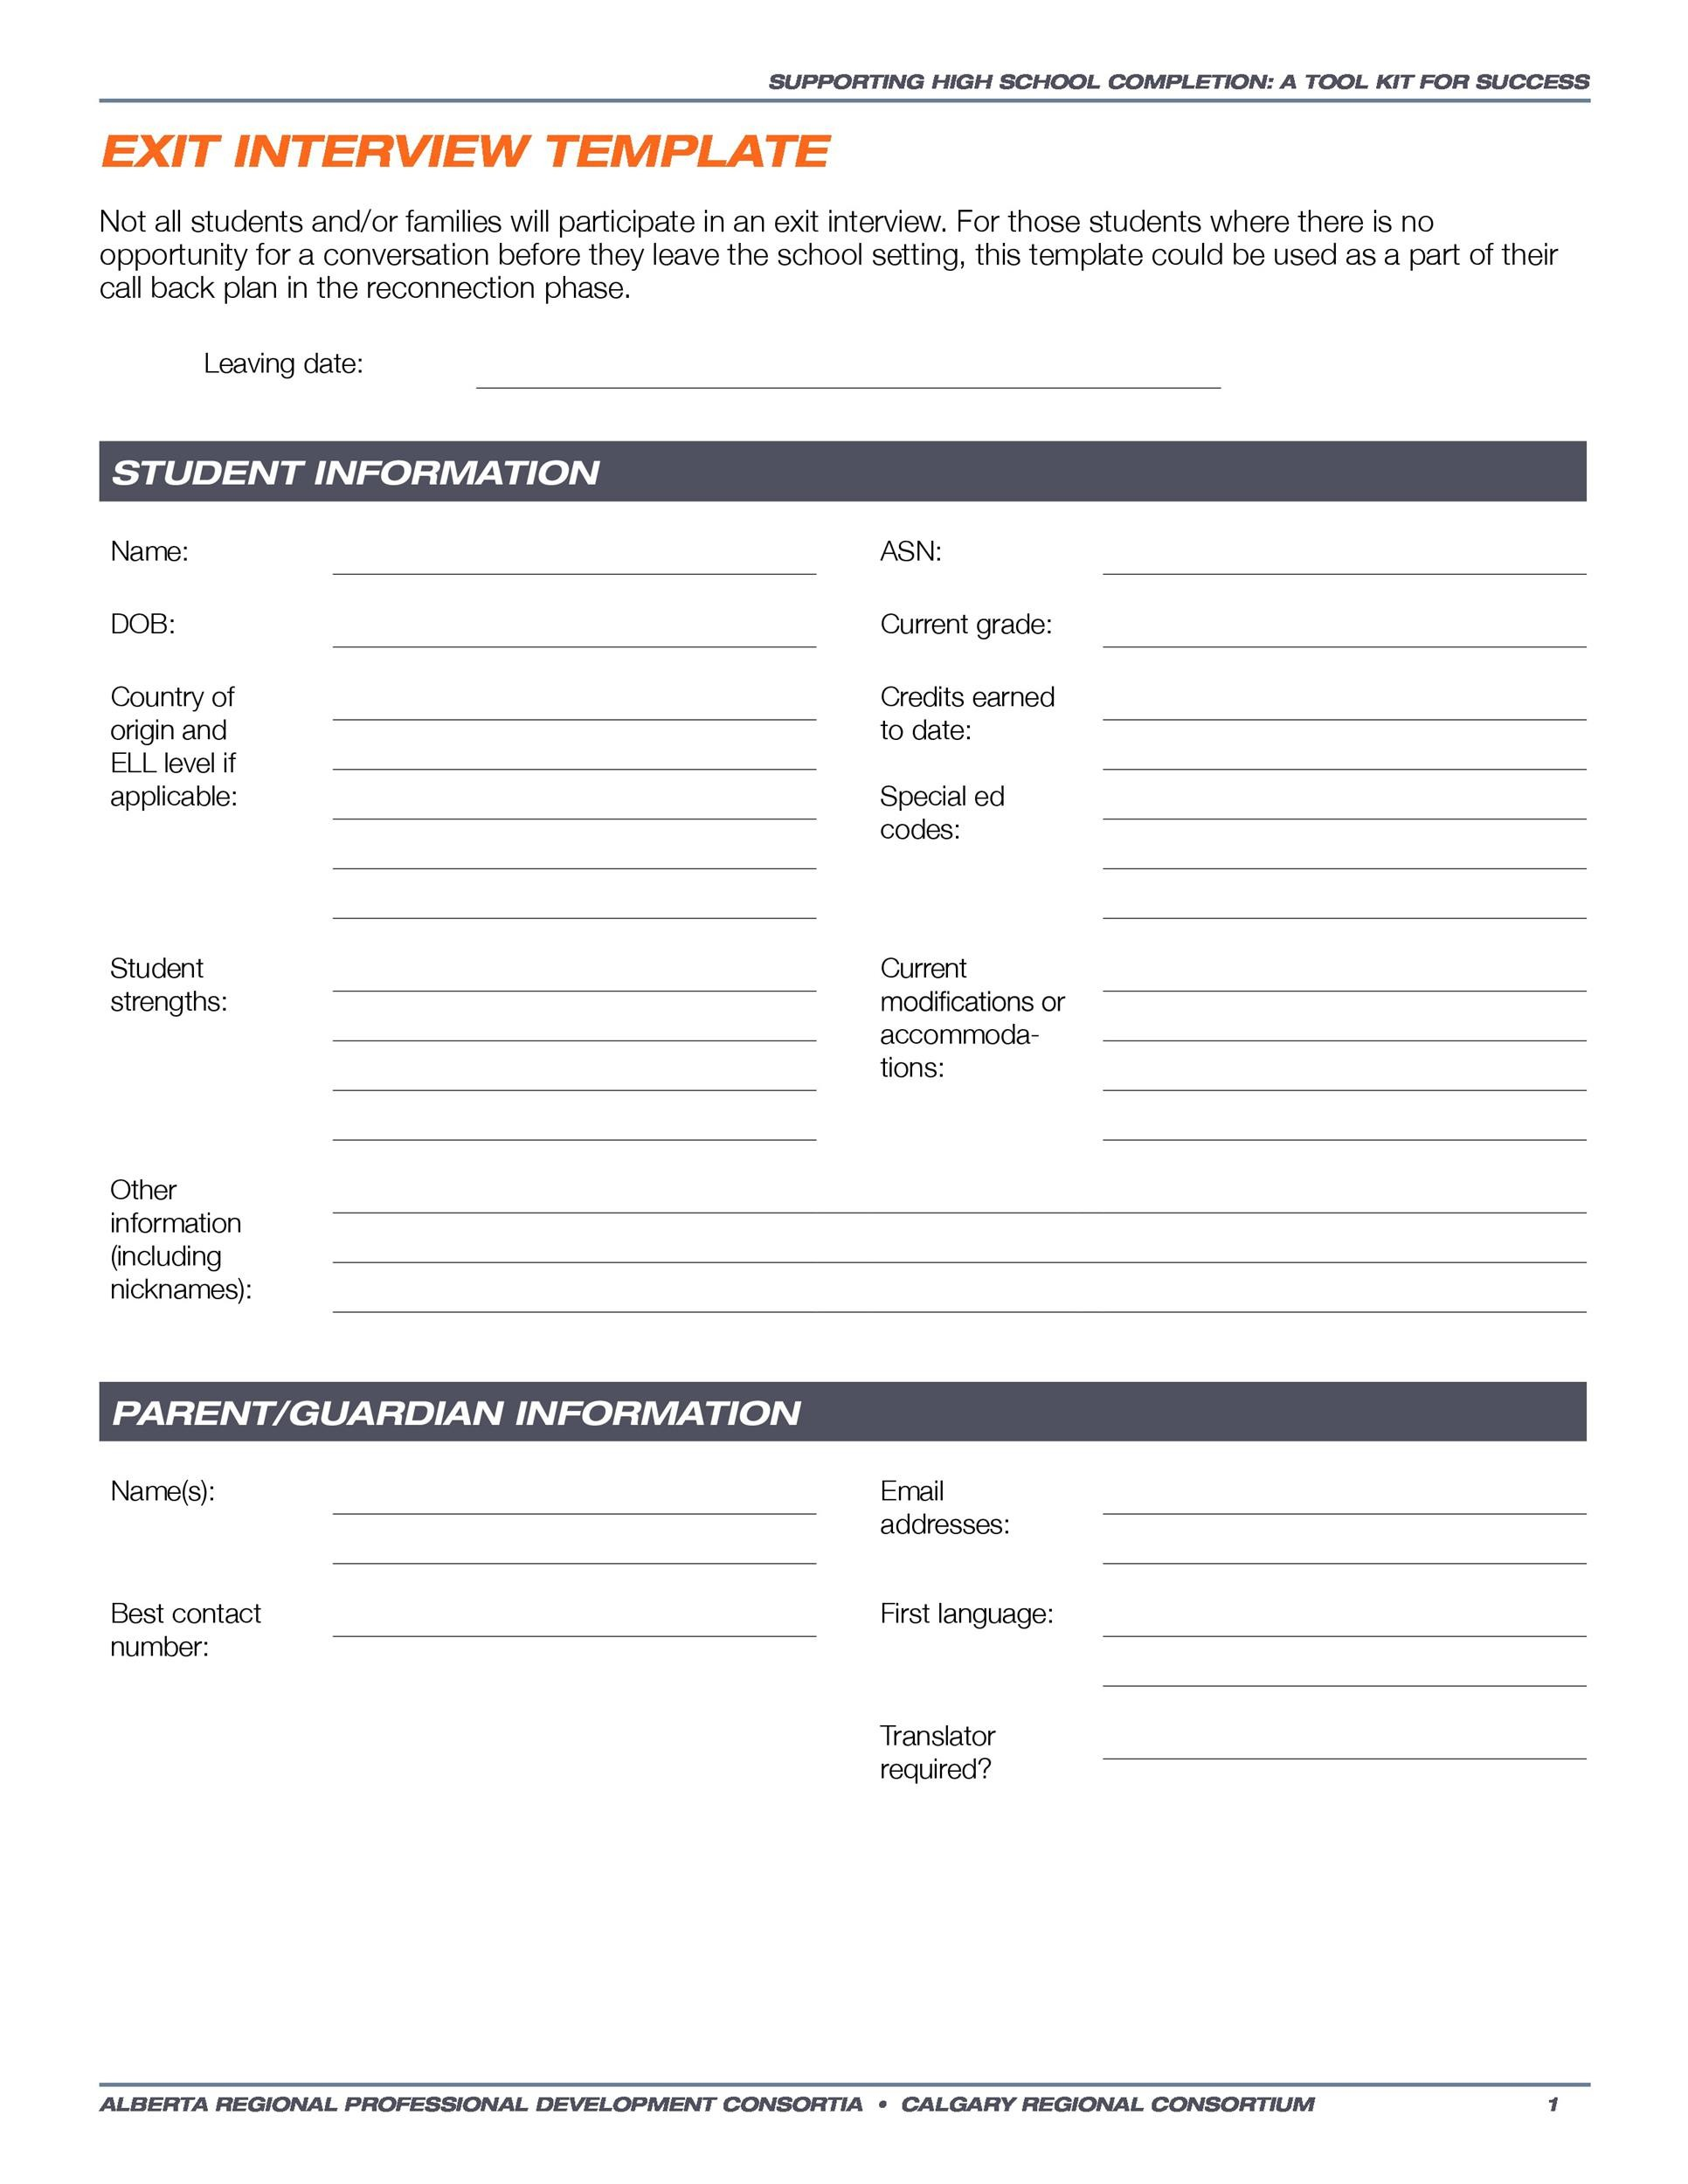 Free exit interview template 34